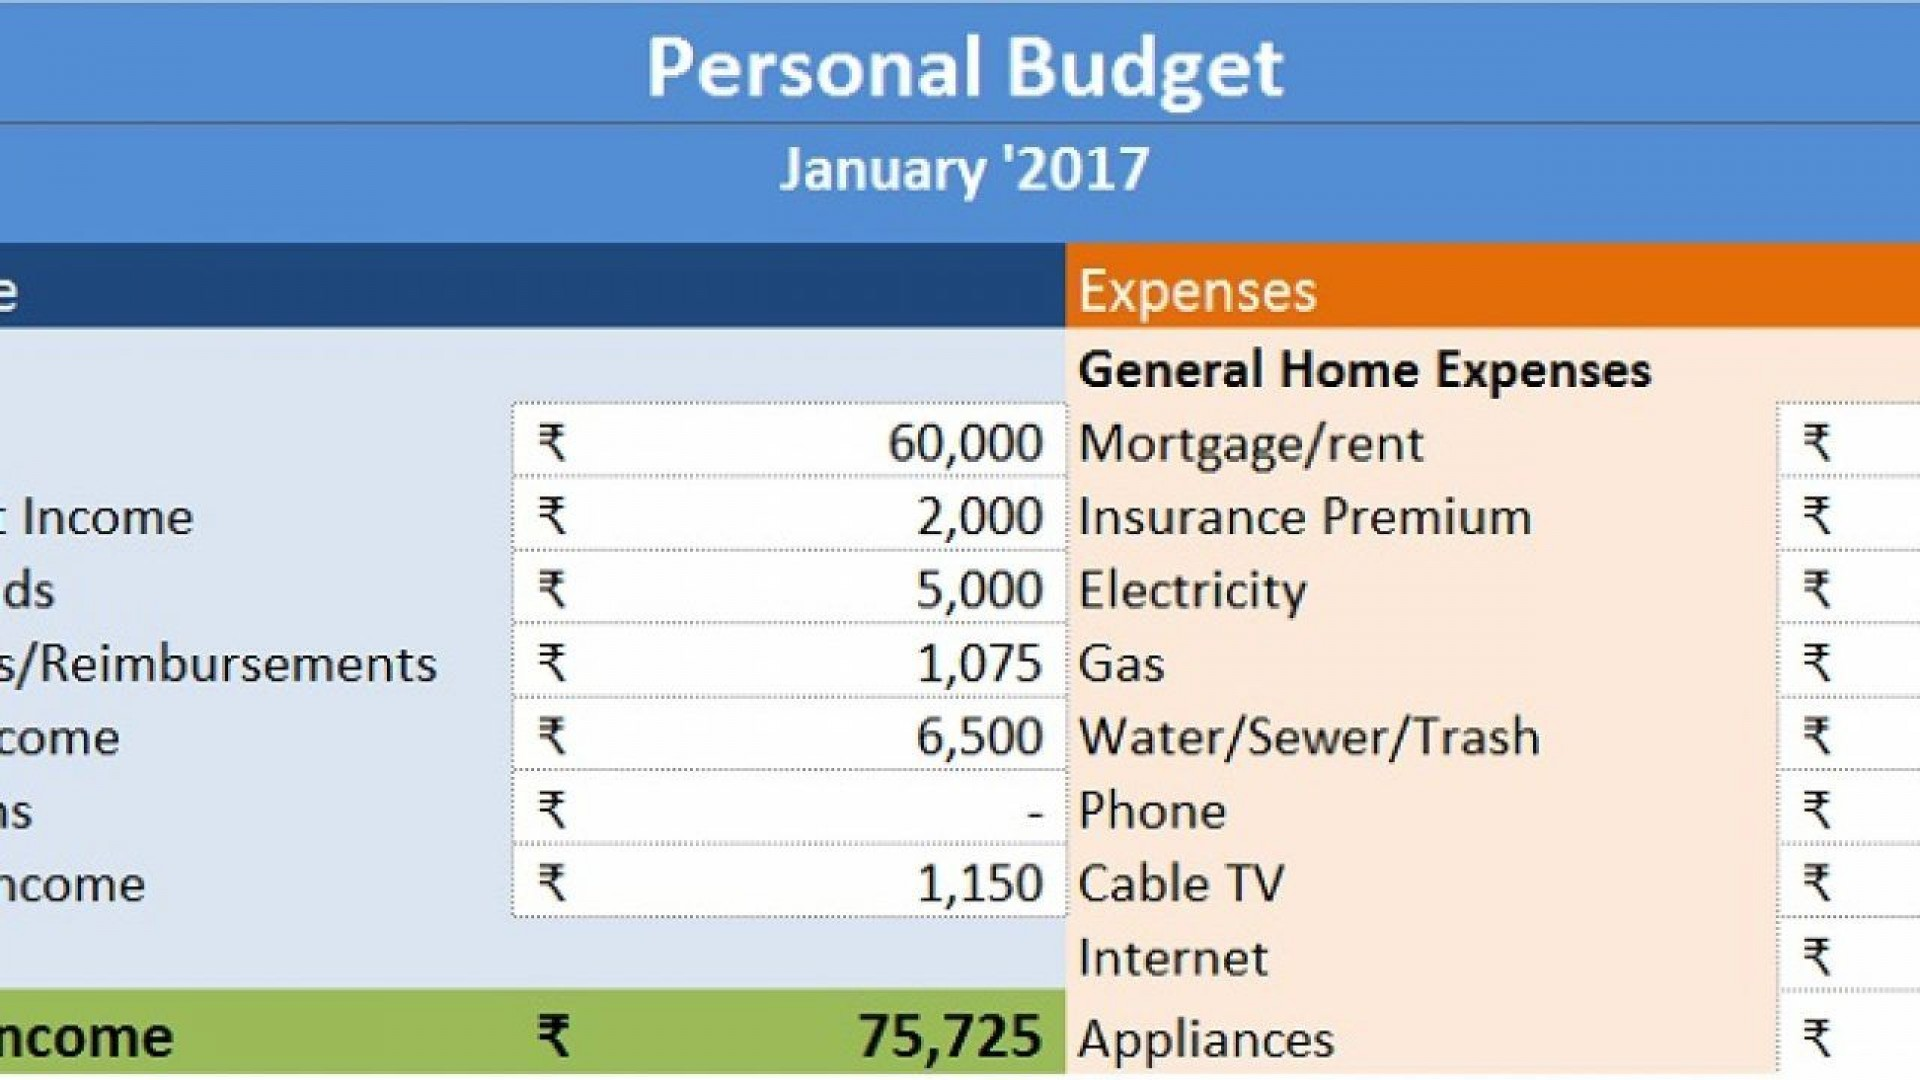 006 Unique Personal Budget Template Excel Sample  Spreadsheet Simple South Africa1920